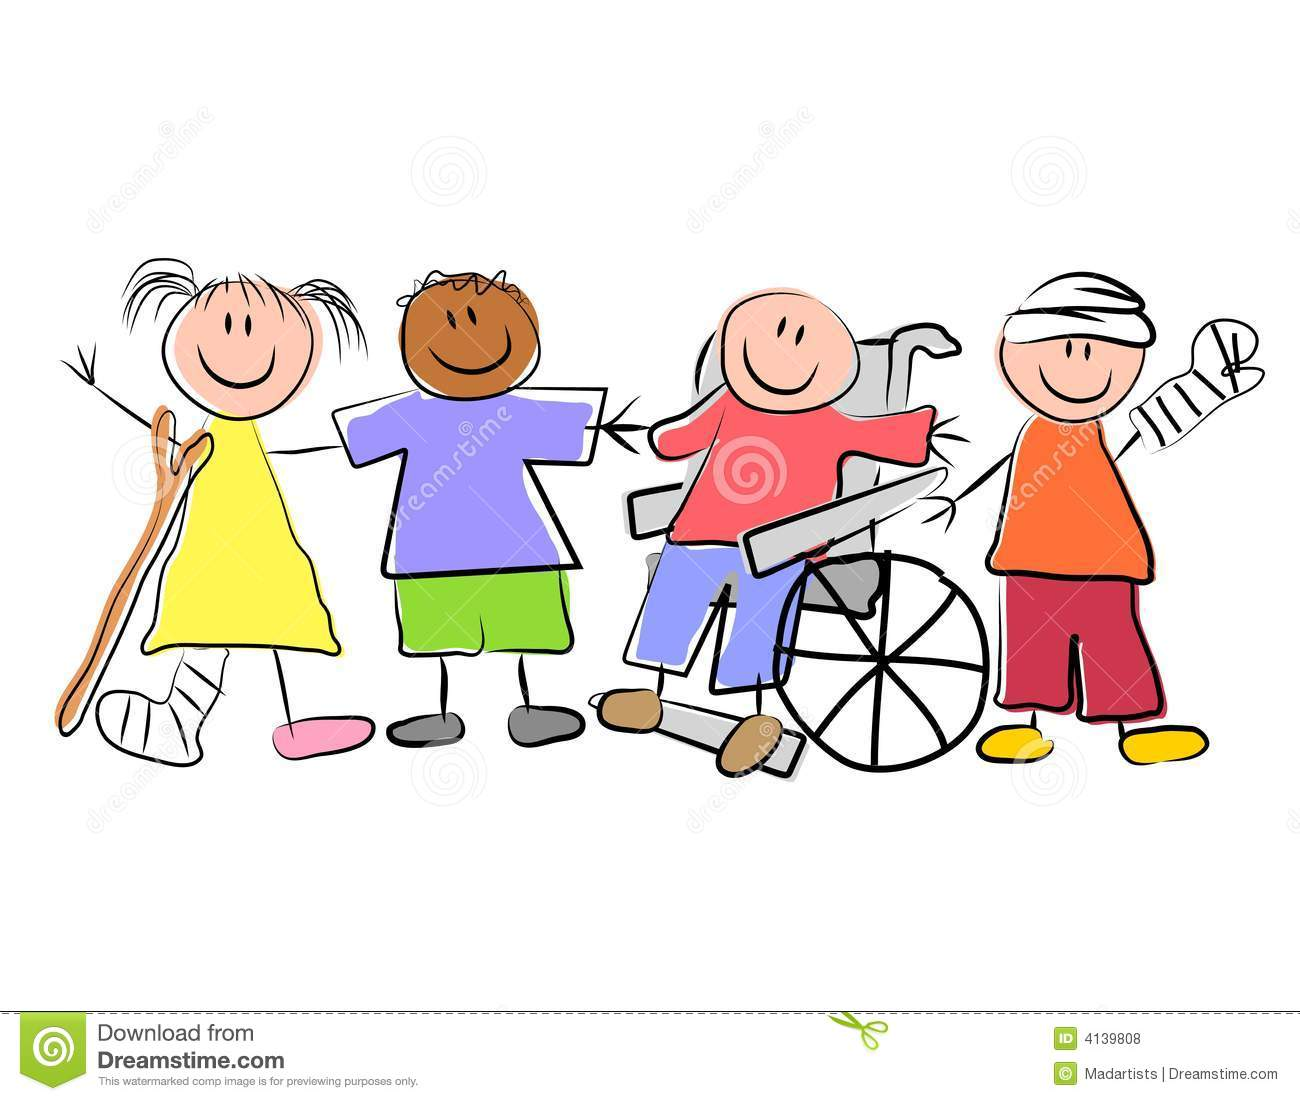 Disability clipart free.